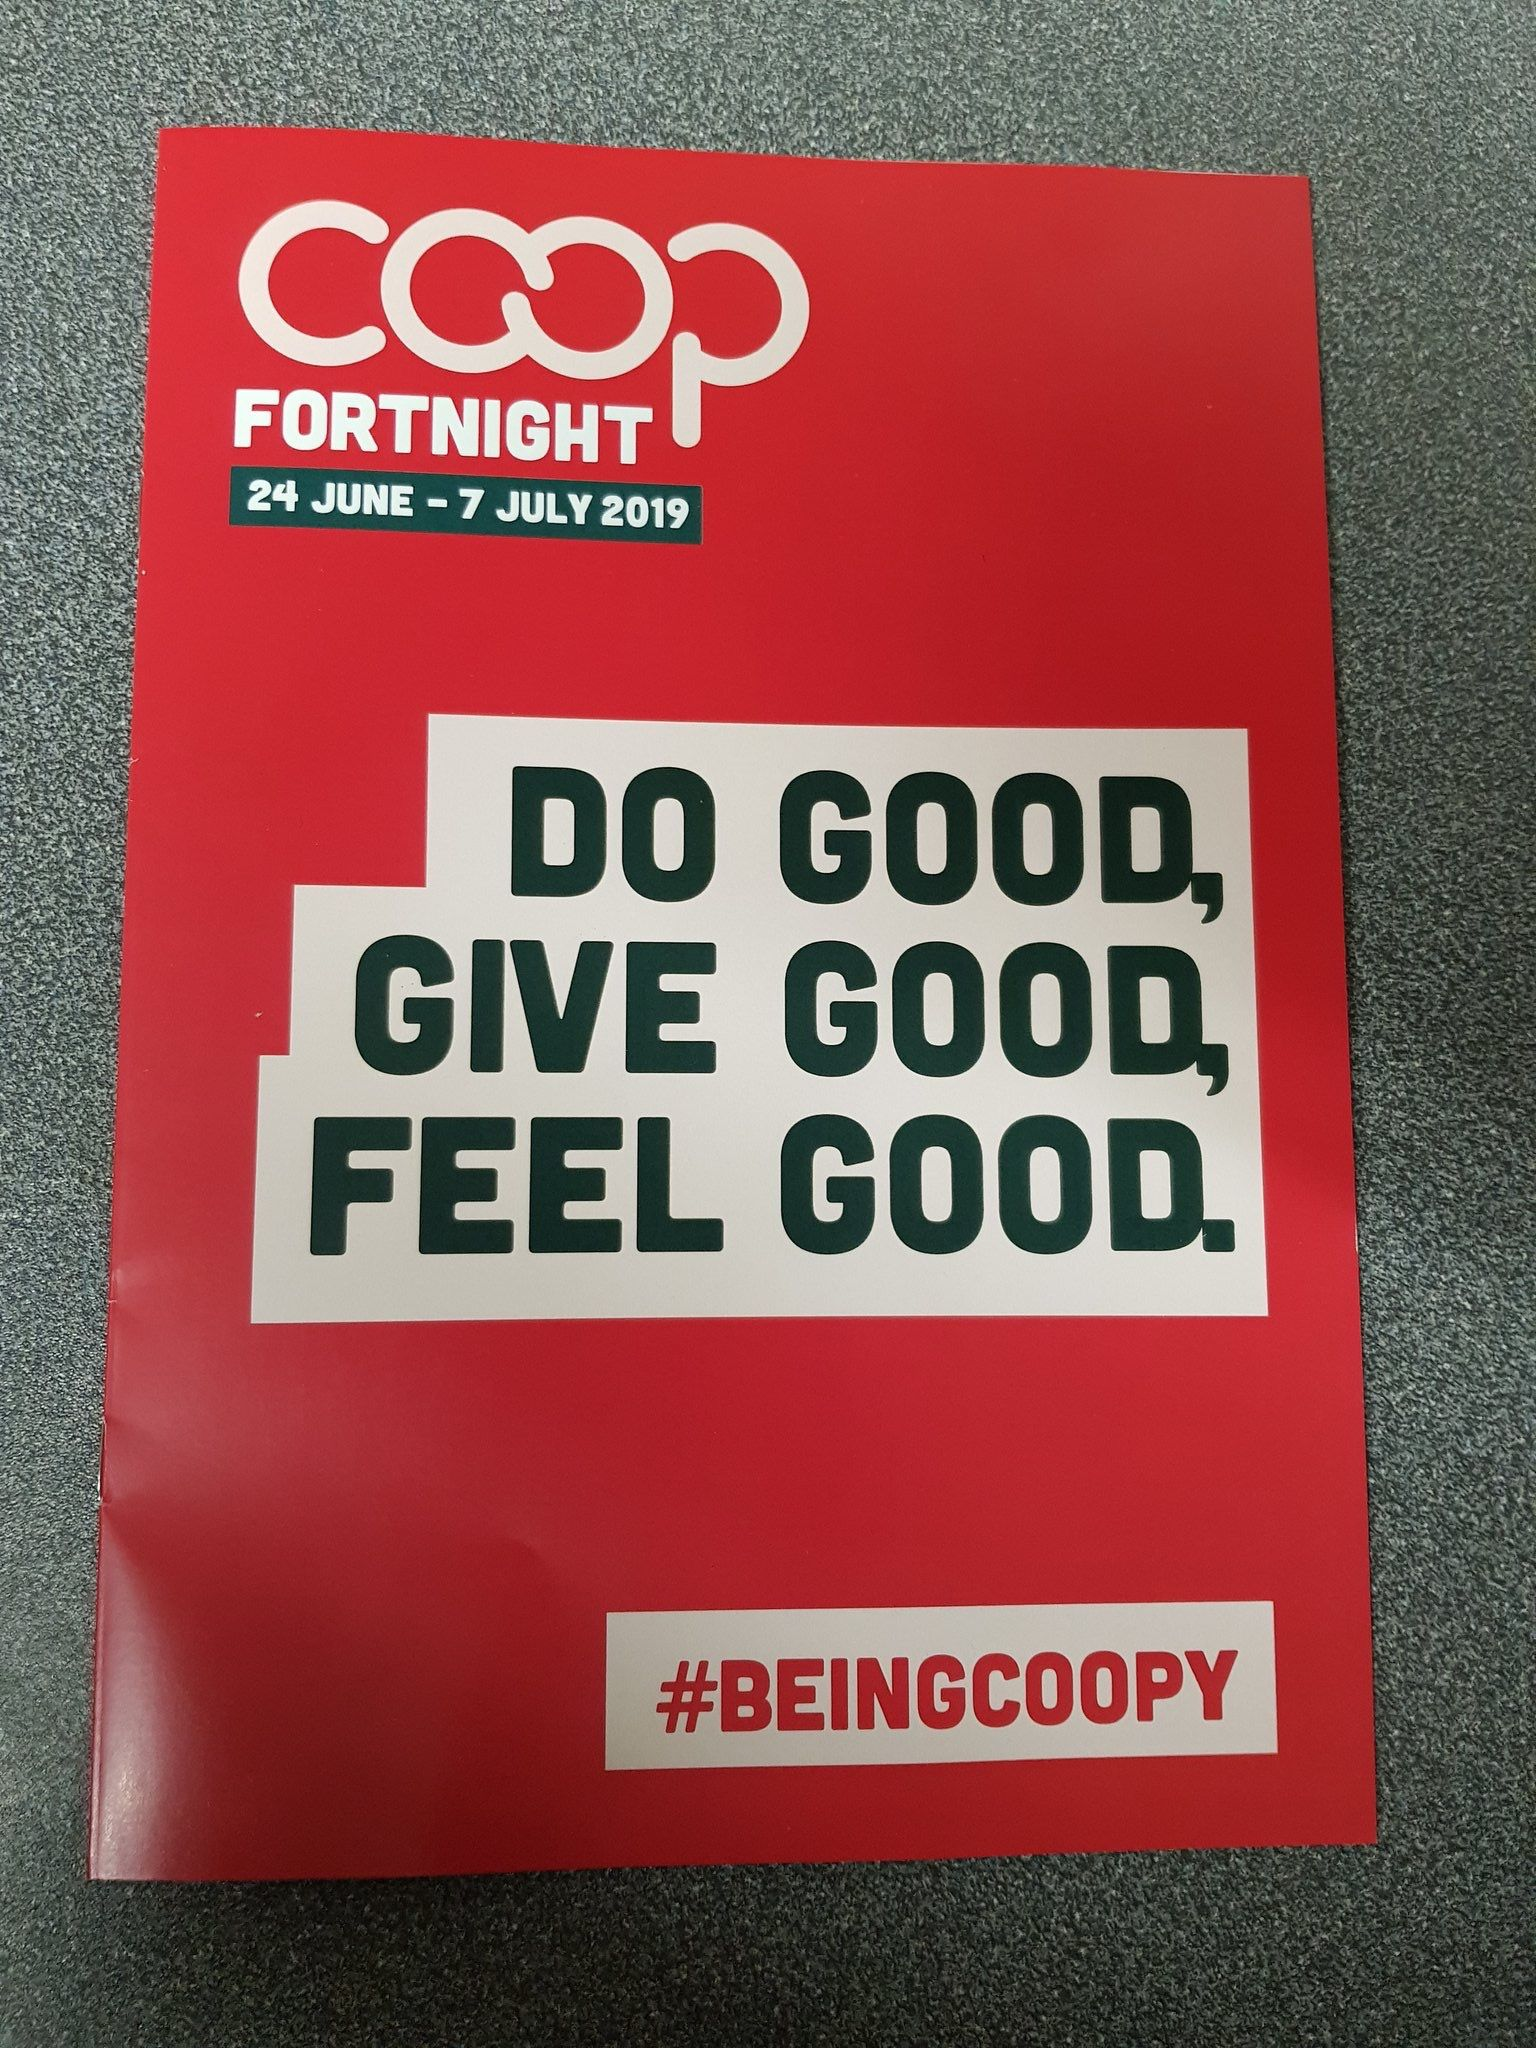 CELEBRATING CO-OPERATIVE FORTNIGHT